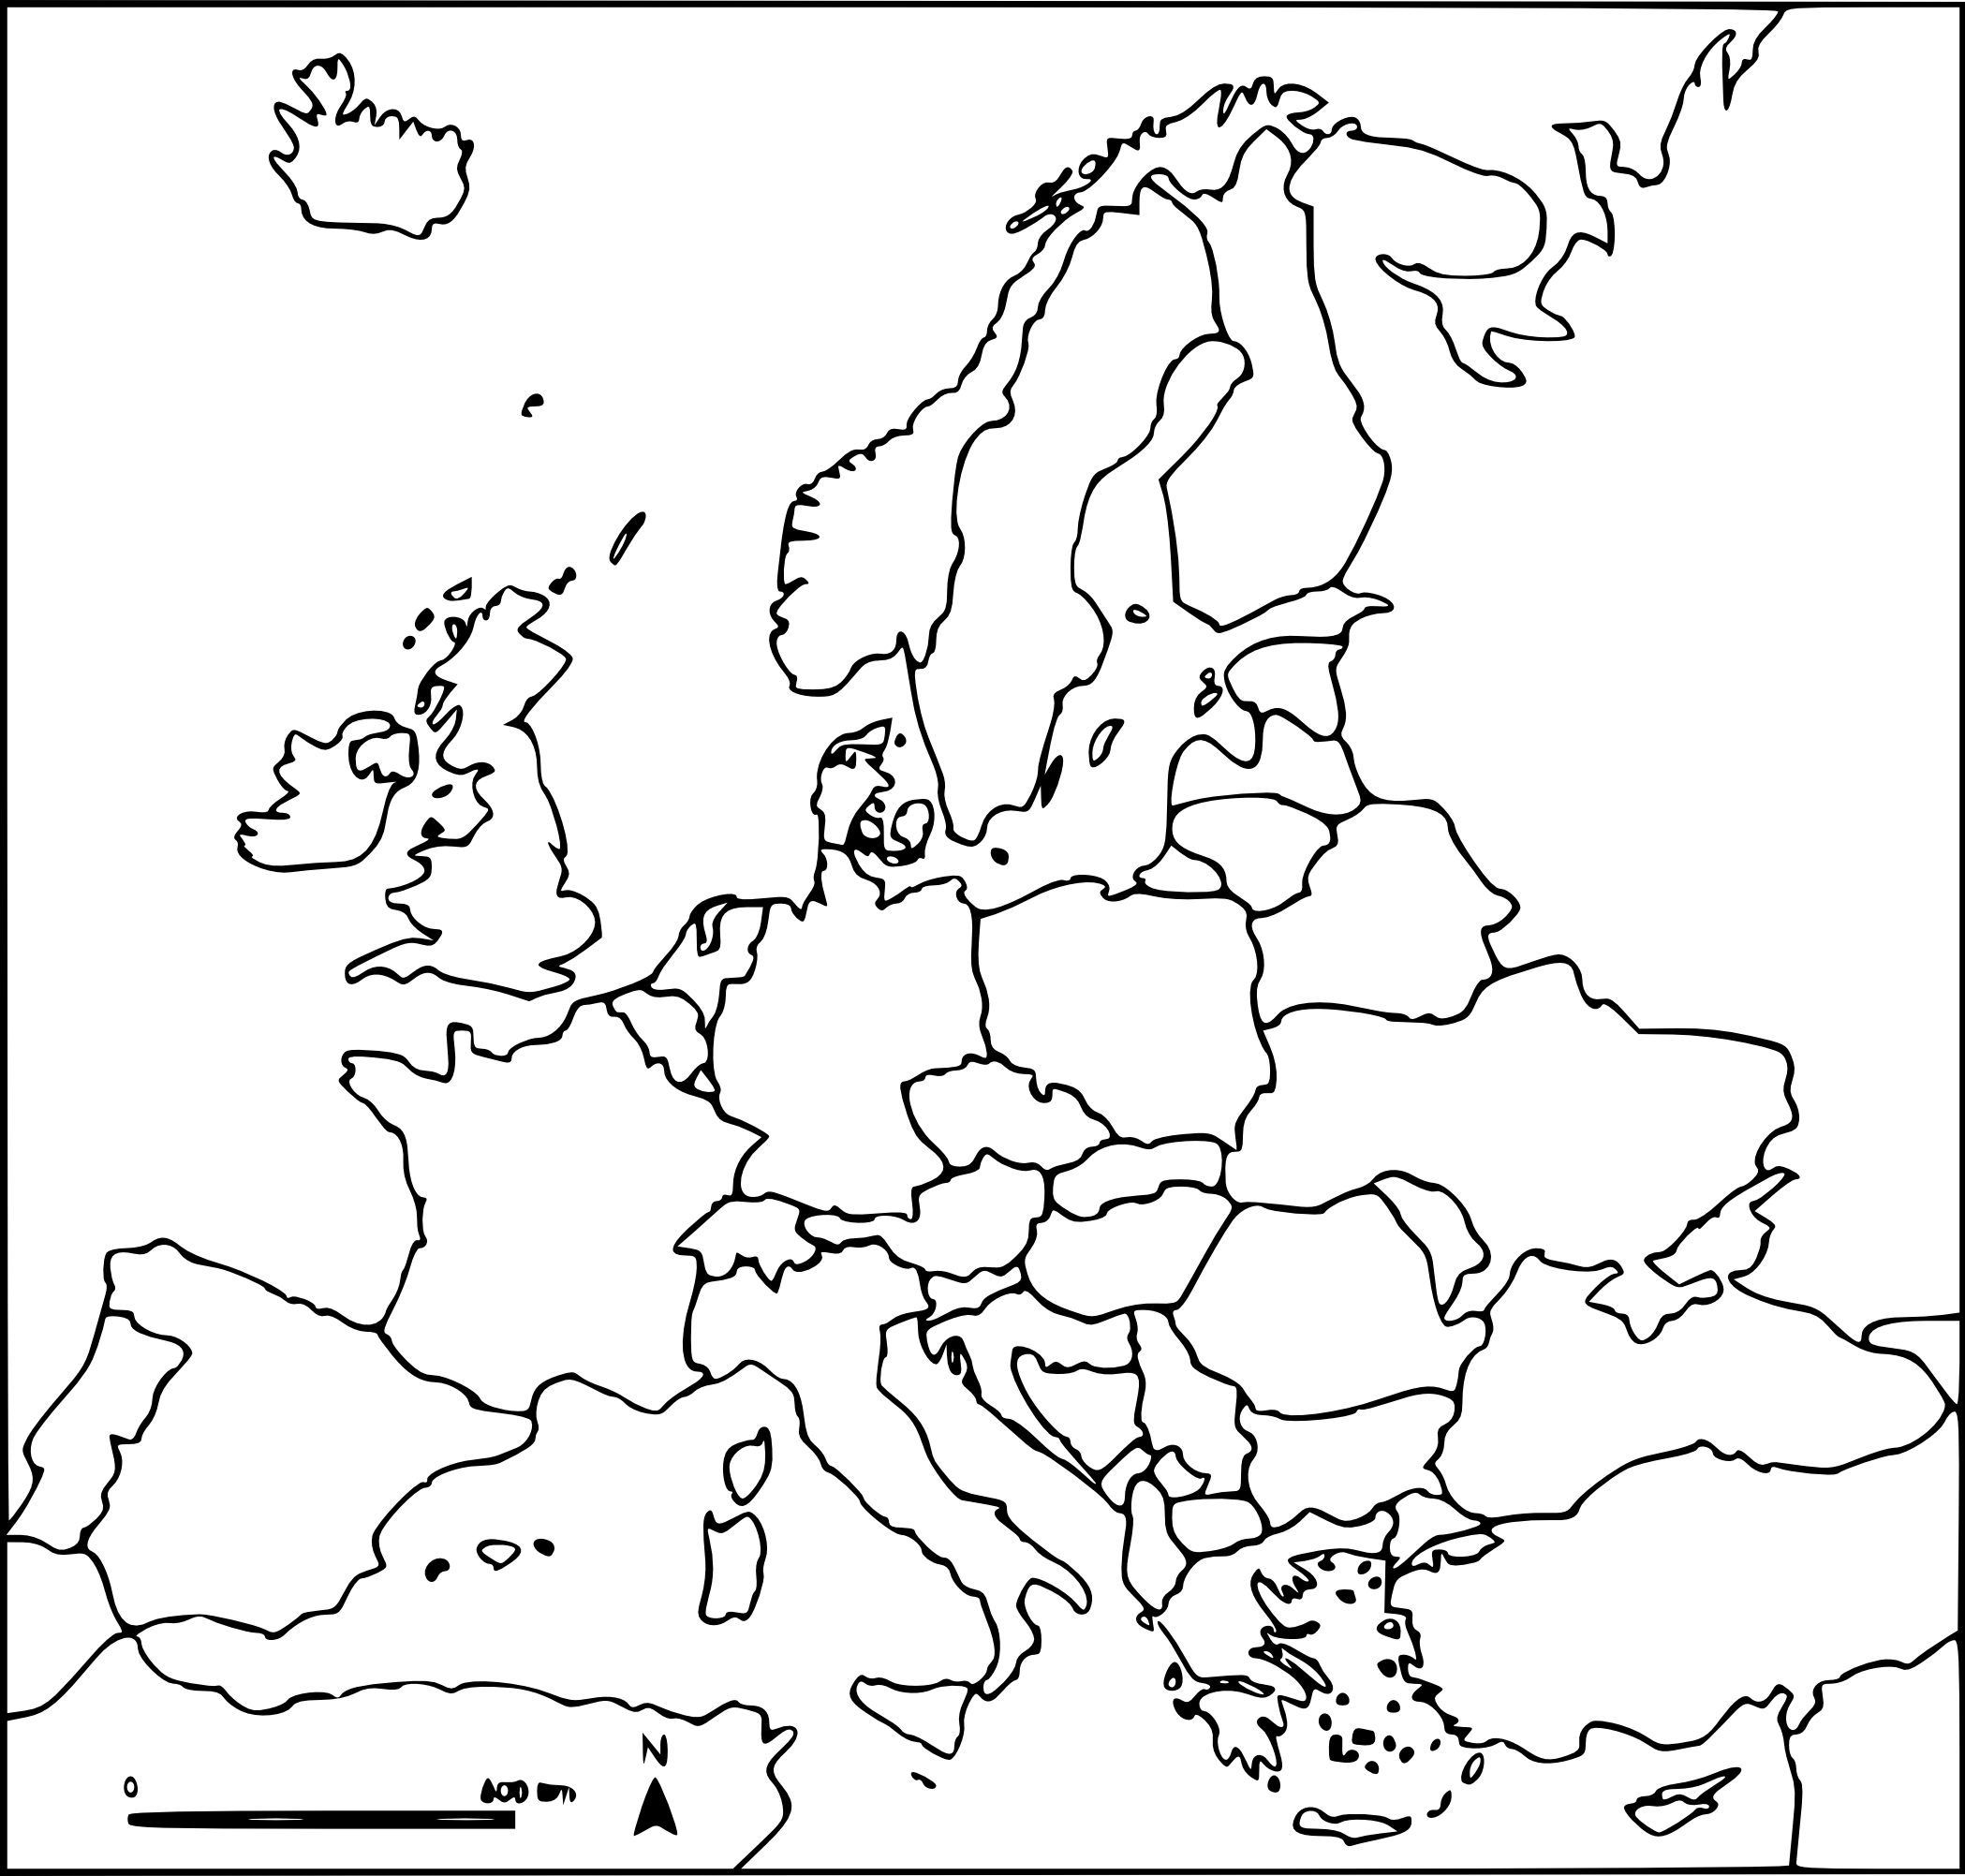 Coloriage carte d'Europe vierge